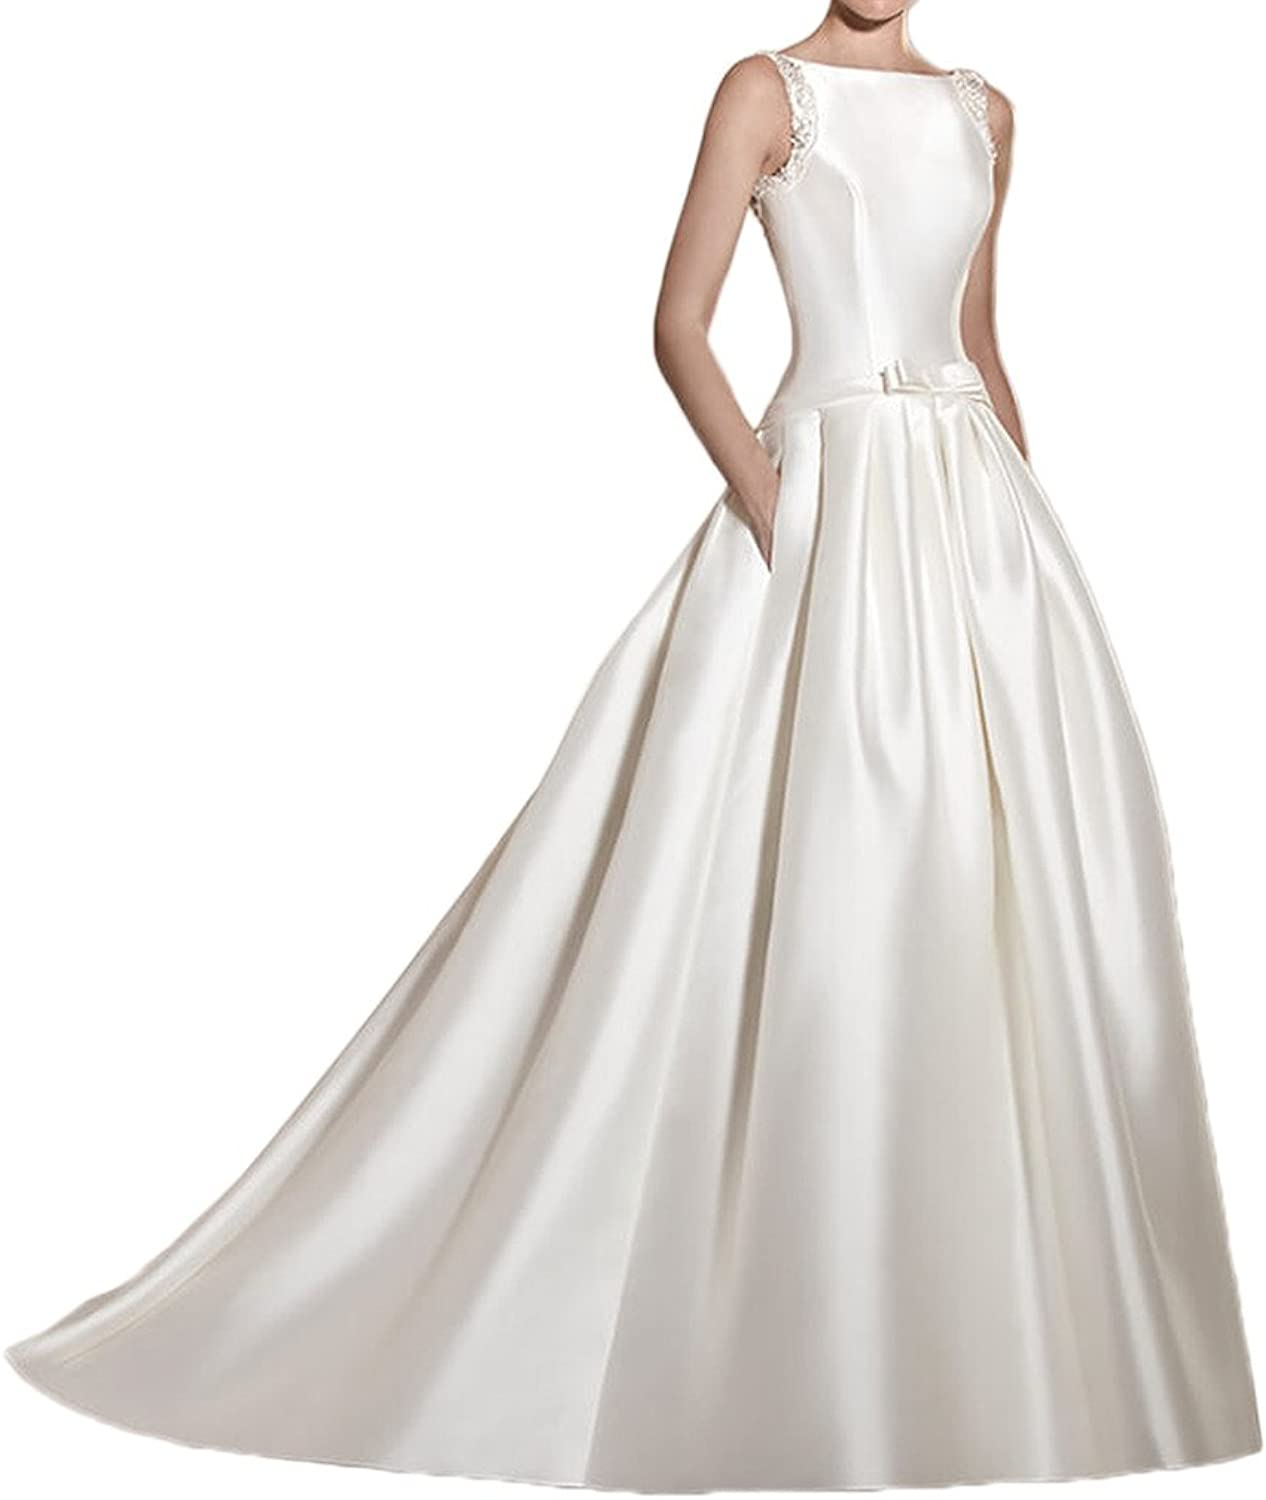 MILANO BRIDE Modern Wedding Dress For Bride Backless Ball Gown Satin Beads Pocket